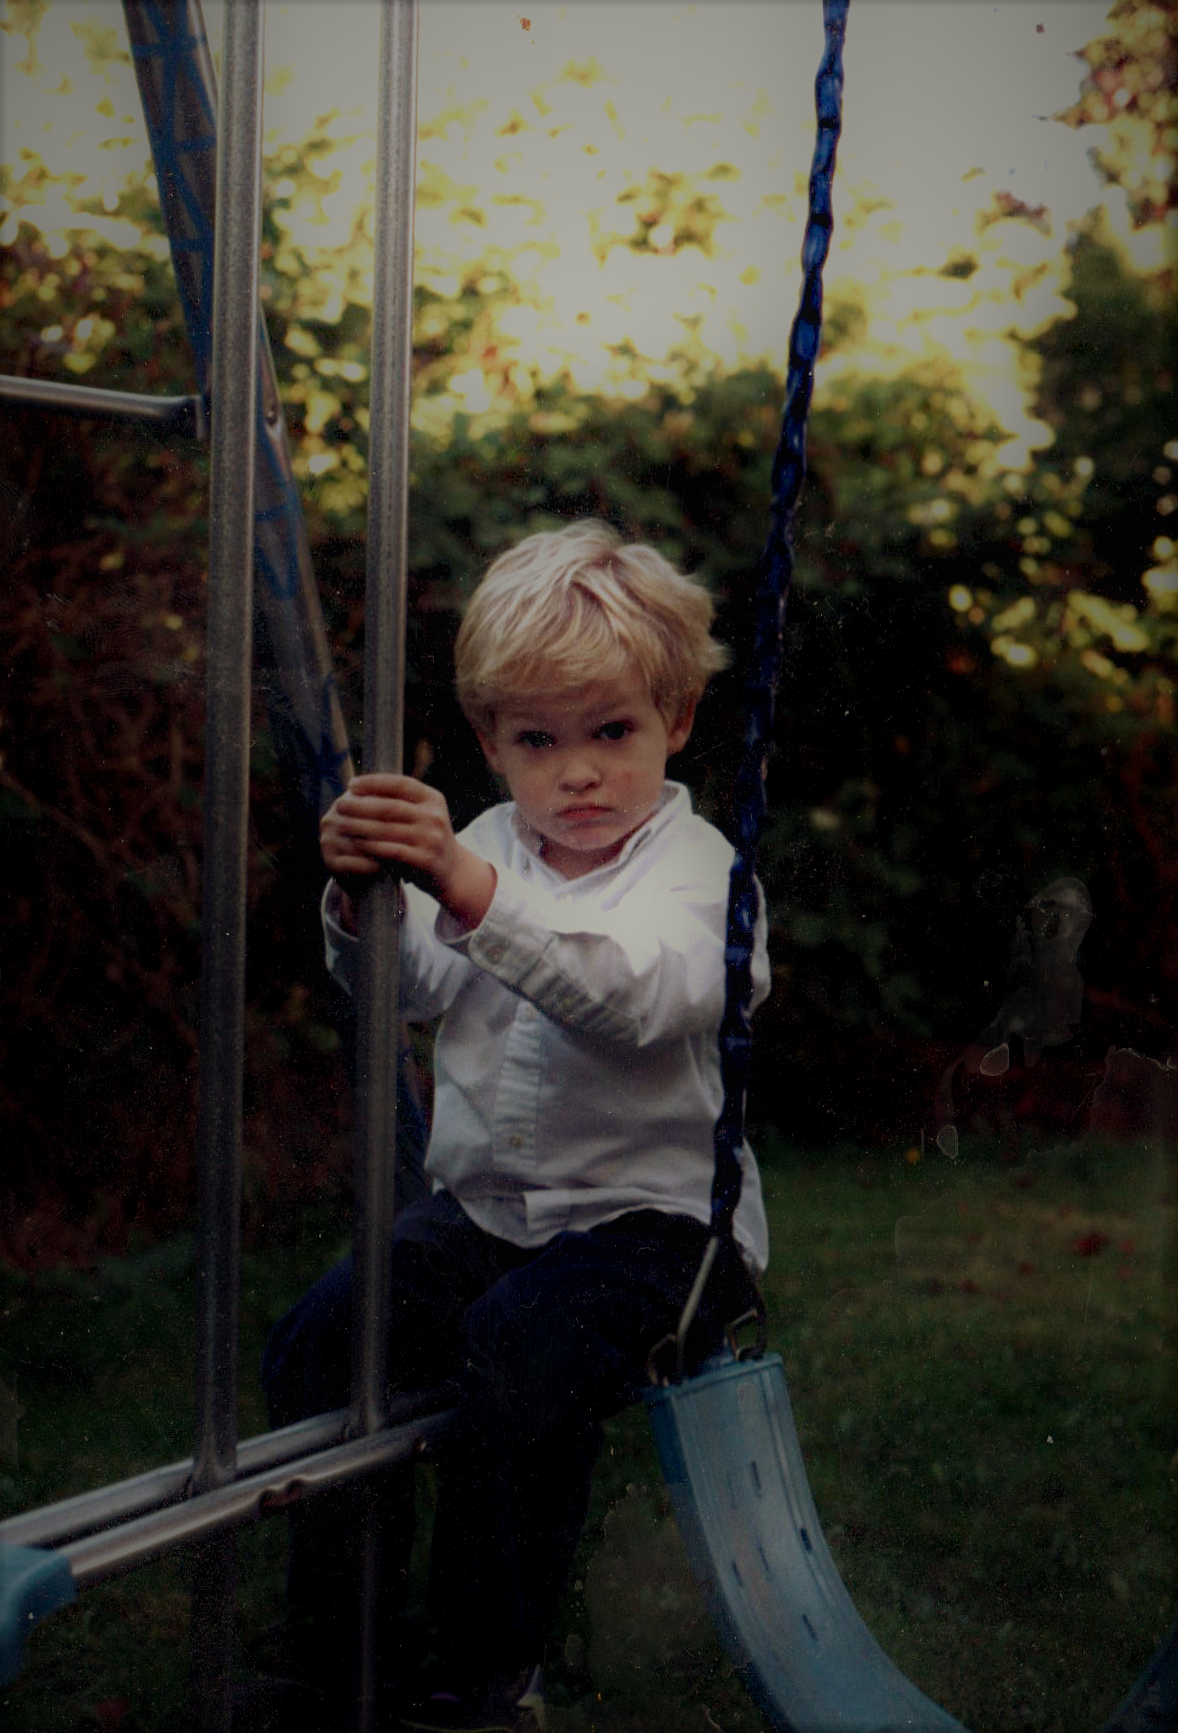 John on swing.png